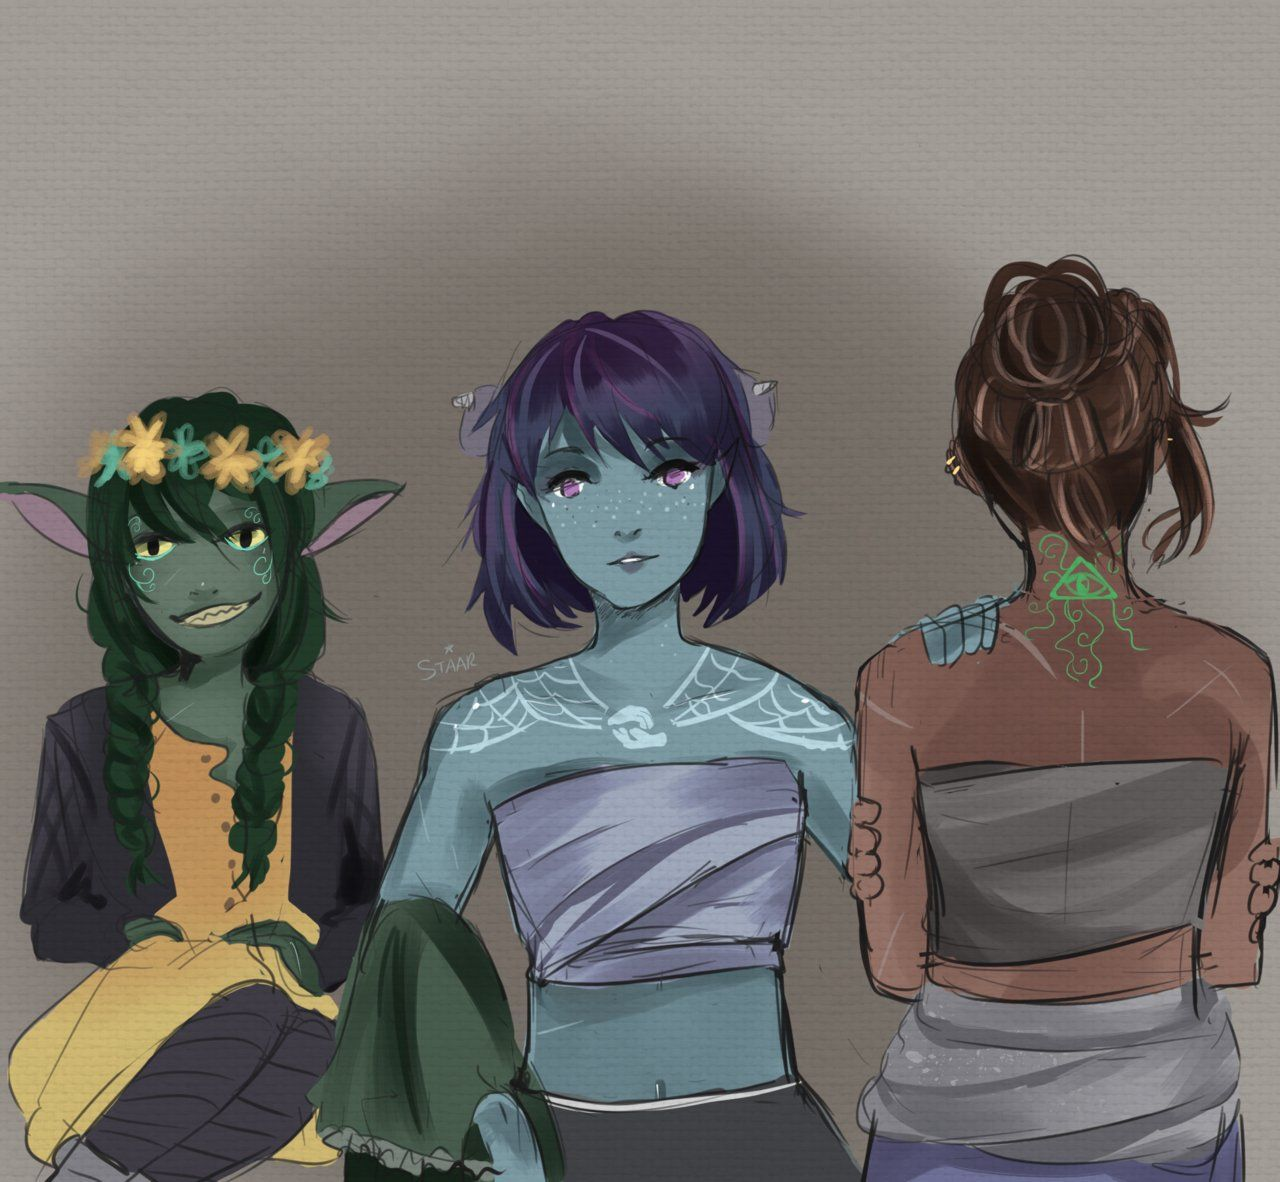 Staary Eyes On Twitter Critical Role Fan Art Critical Role Critical Role Campaign 2 Critical role characters critical role fan art dnd characters fantasy characters female jade tattoo you guys liked it so much i gave it a glowup #criticalrole #criticalroleart. critical role fan art